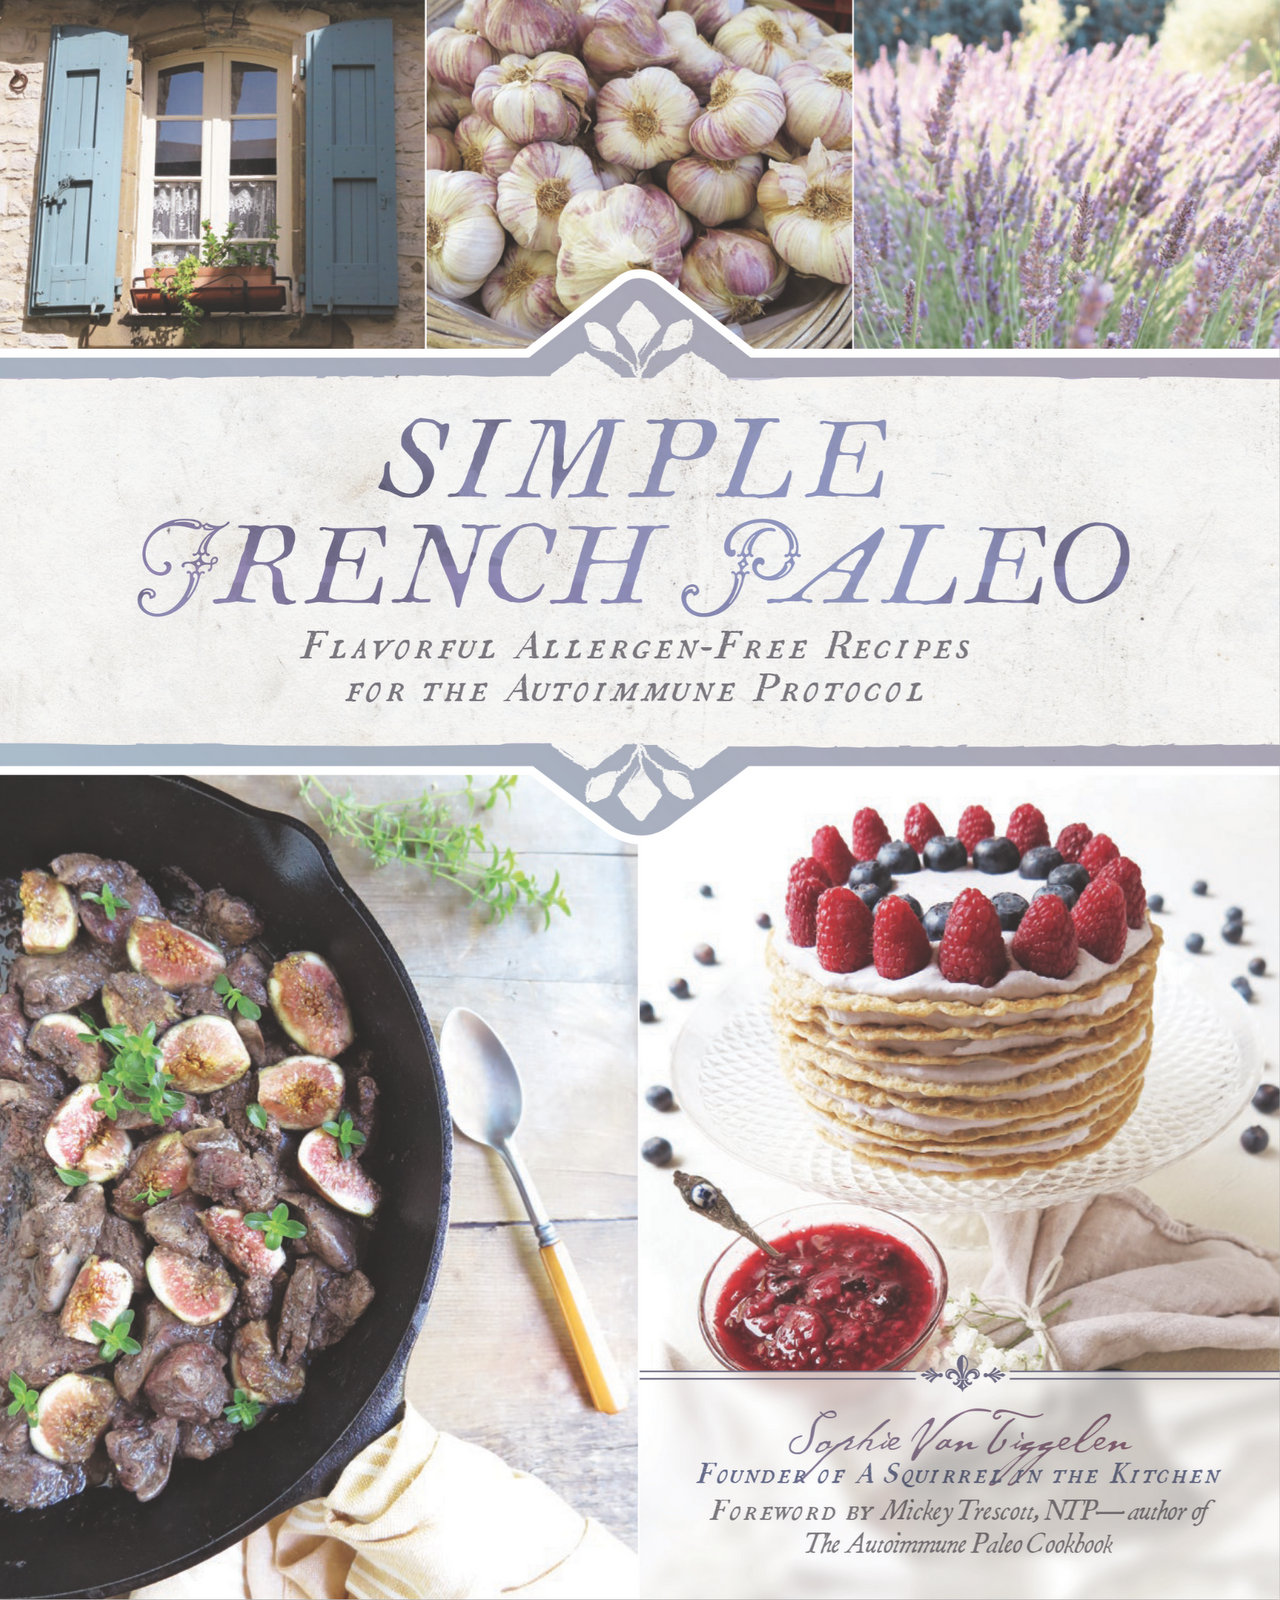 Simple French Paleo Cookbook Review & Sample Recipe | Phoenix Helix